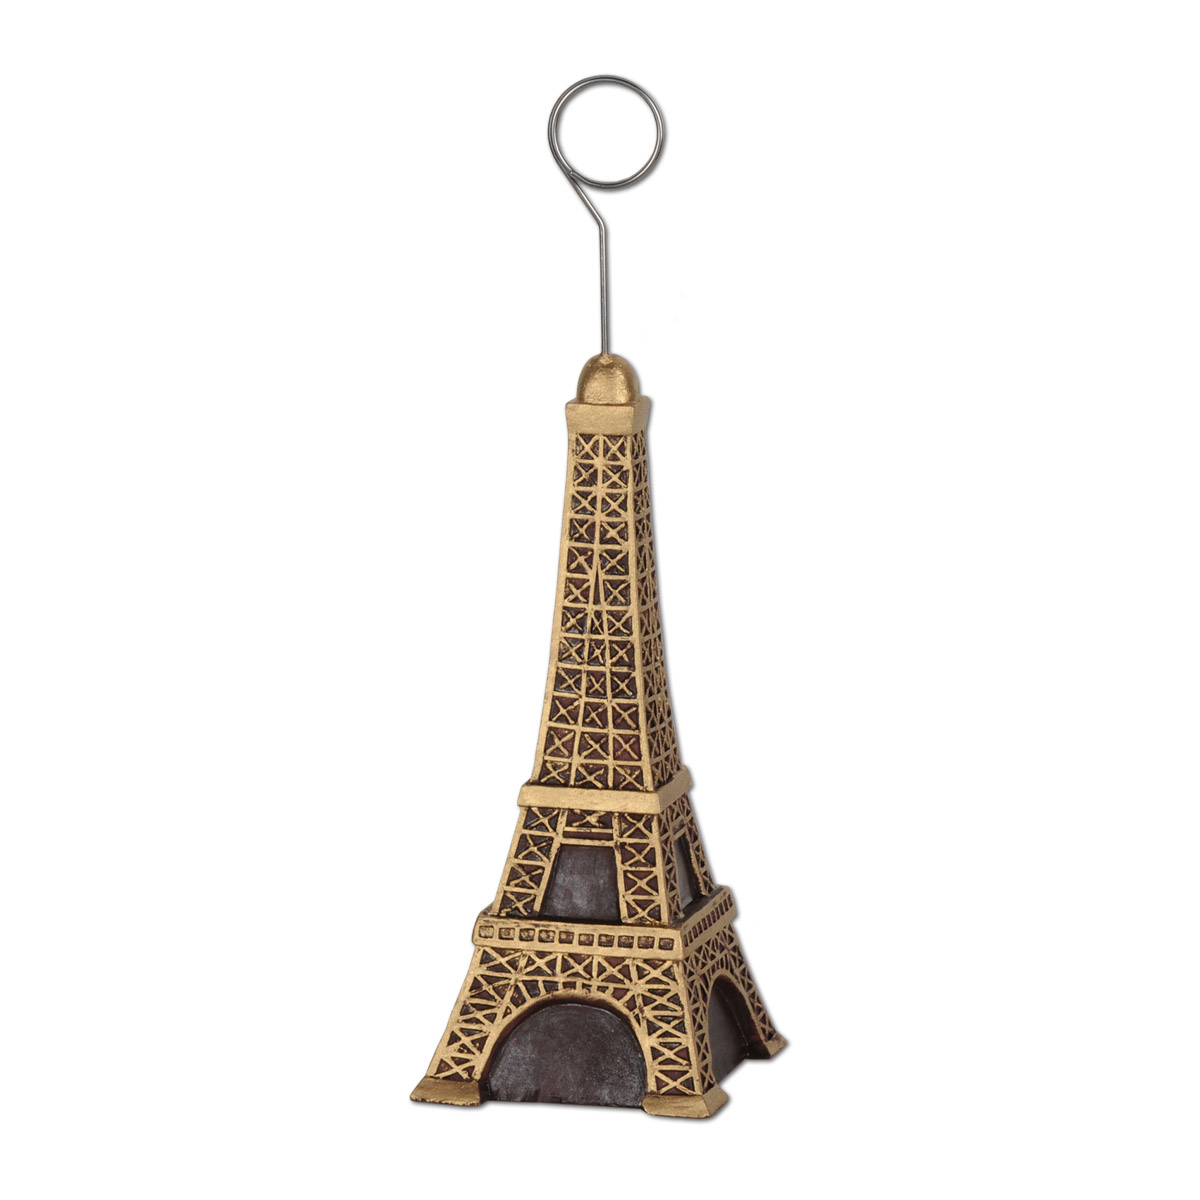 6oz Eiffel Tower Photo/Balloon Holder Eiffel Tower Centerpiece, Balloon Holder, Photo Menu Holder, Wholesale party decorations, Inexpensive party decor, Paris themed